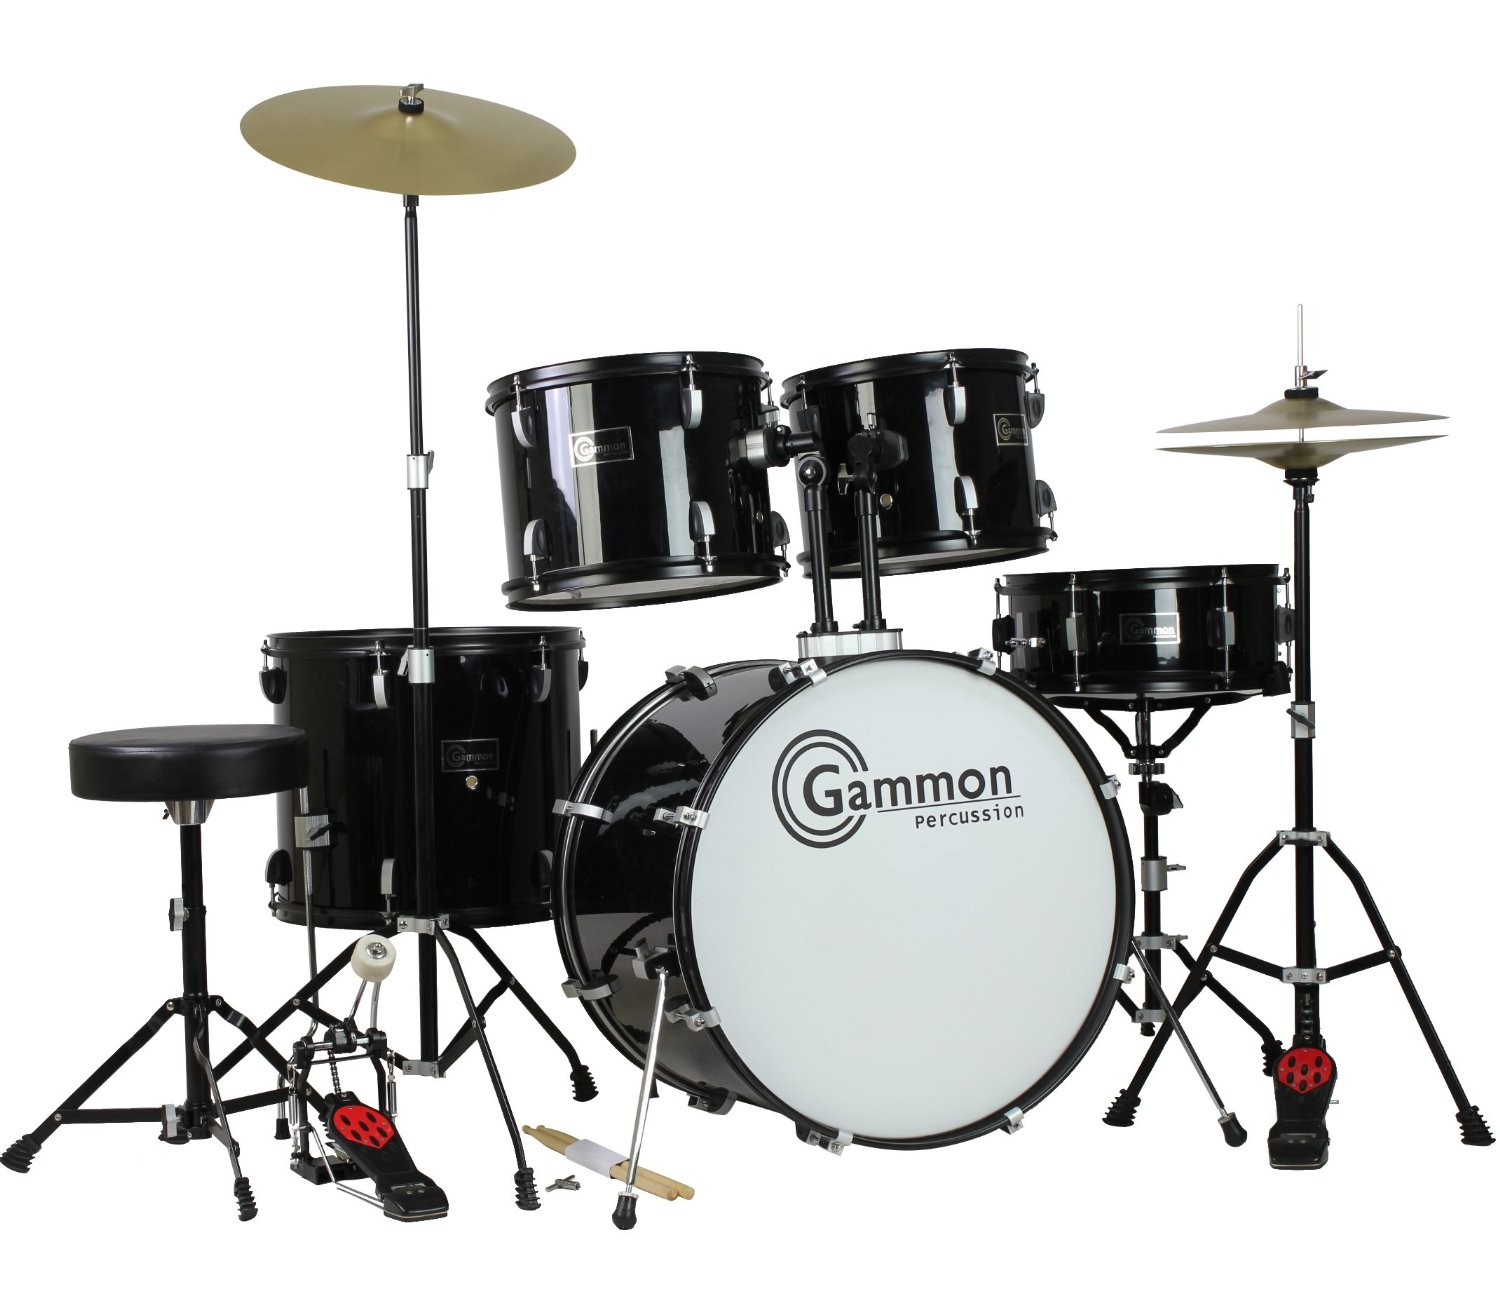 Top 10 Best Drum Sets For Beginners And Professionals In 2020 Review